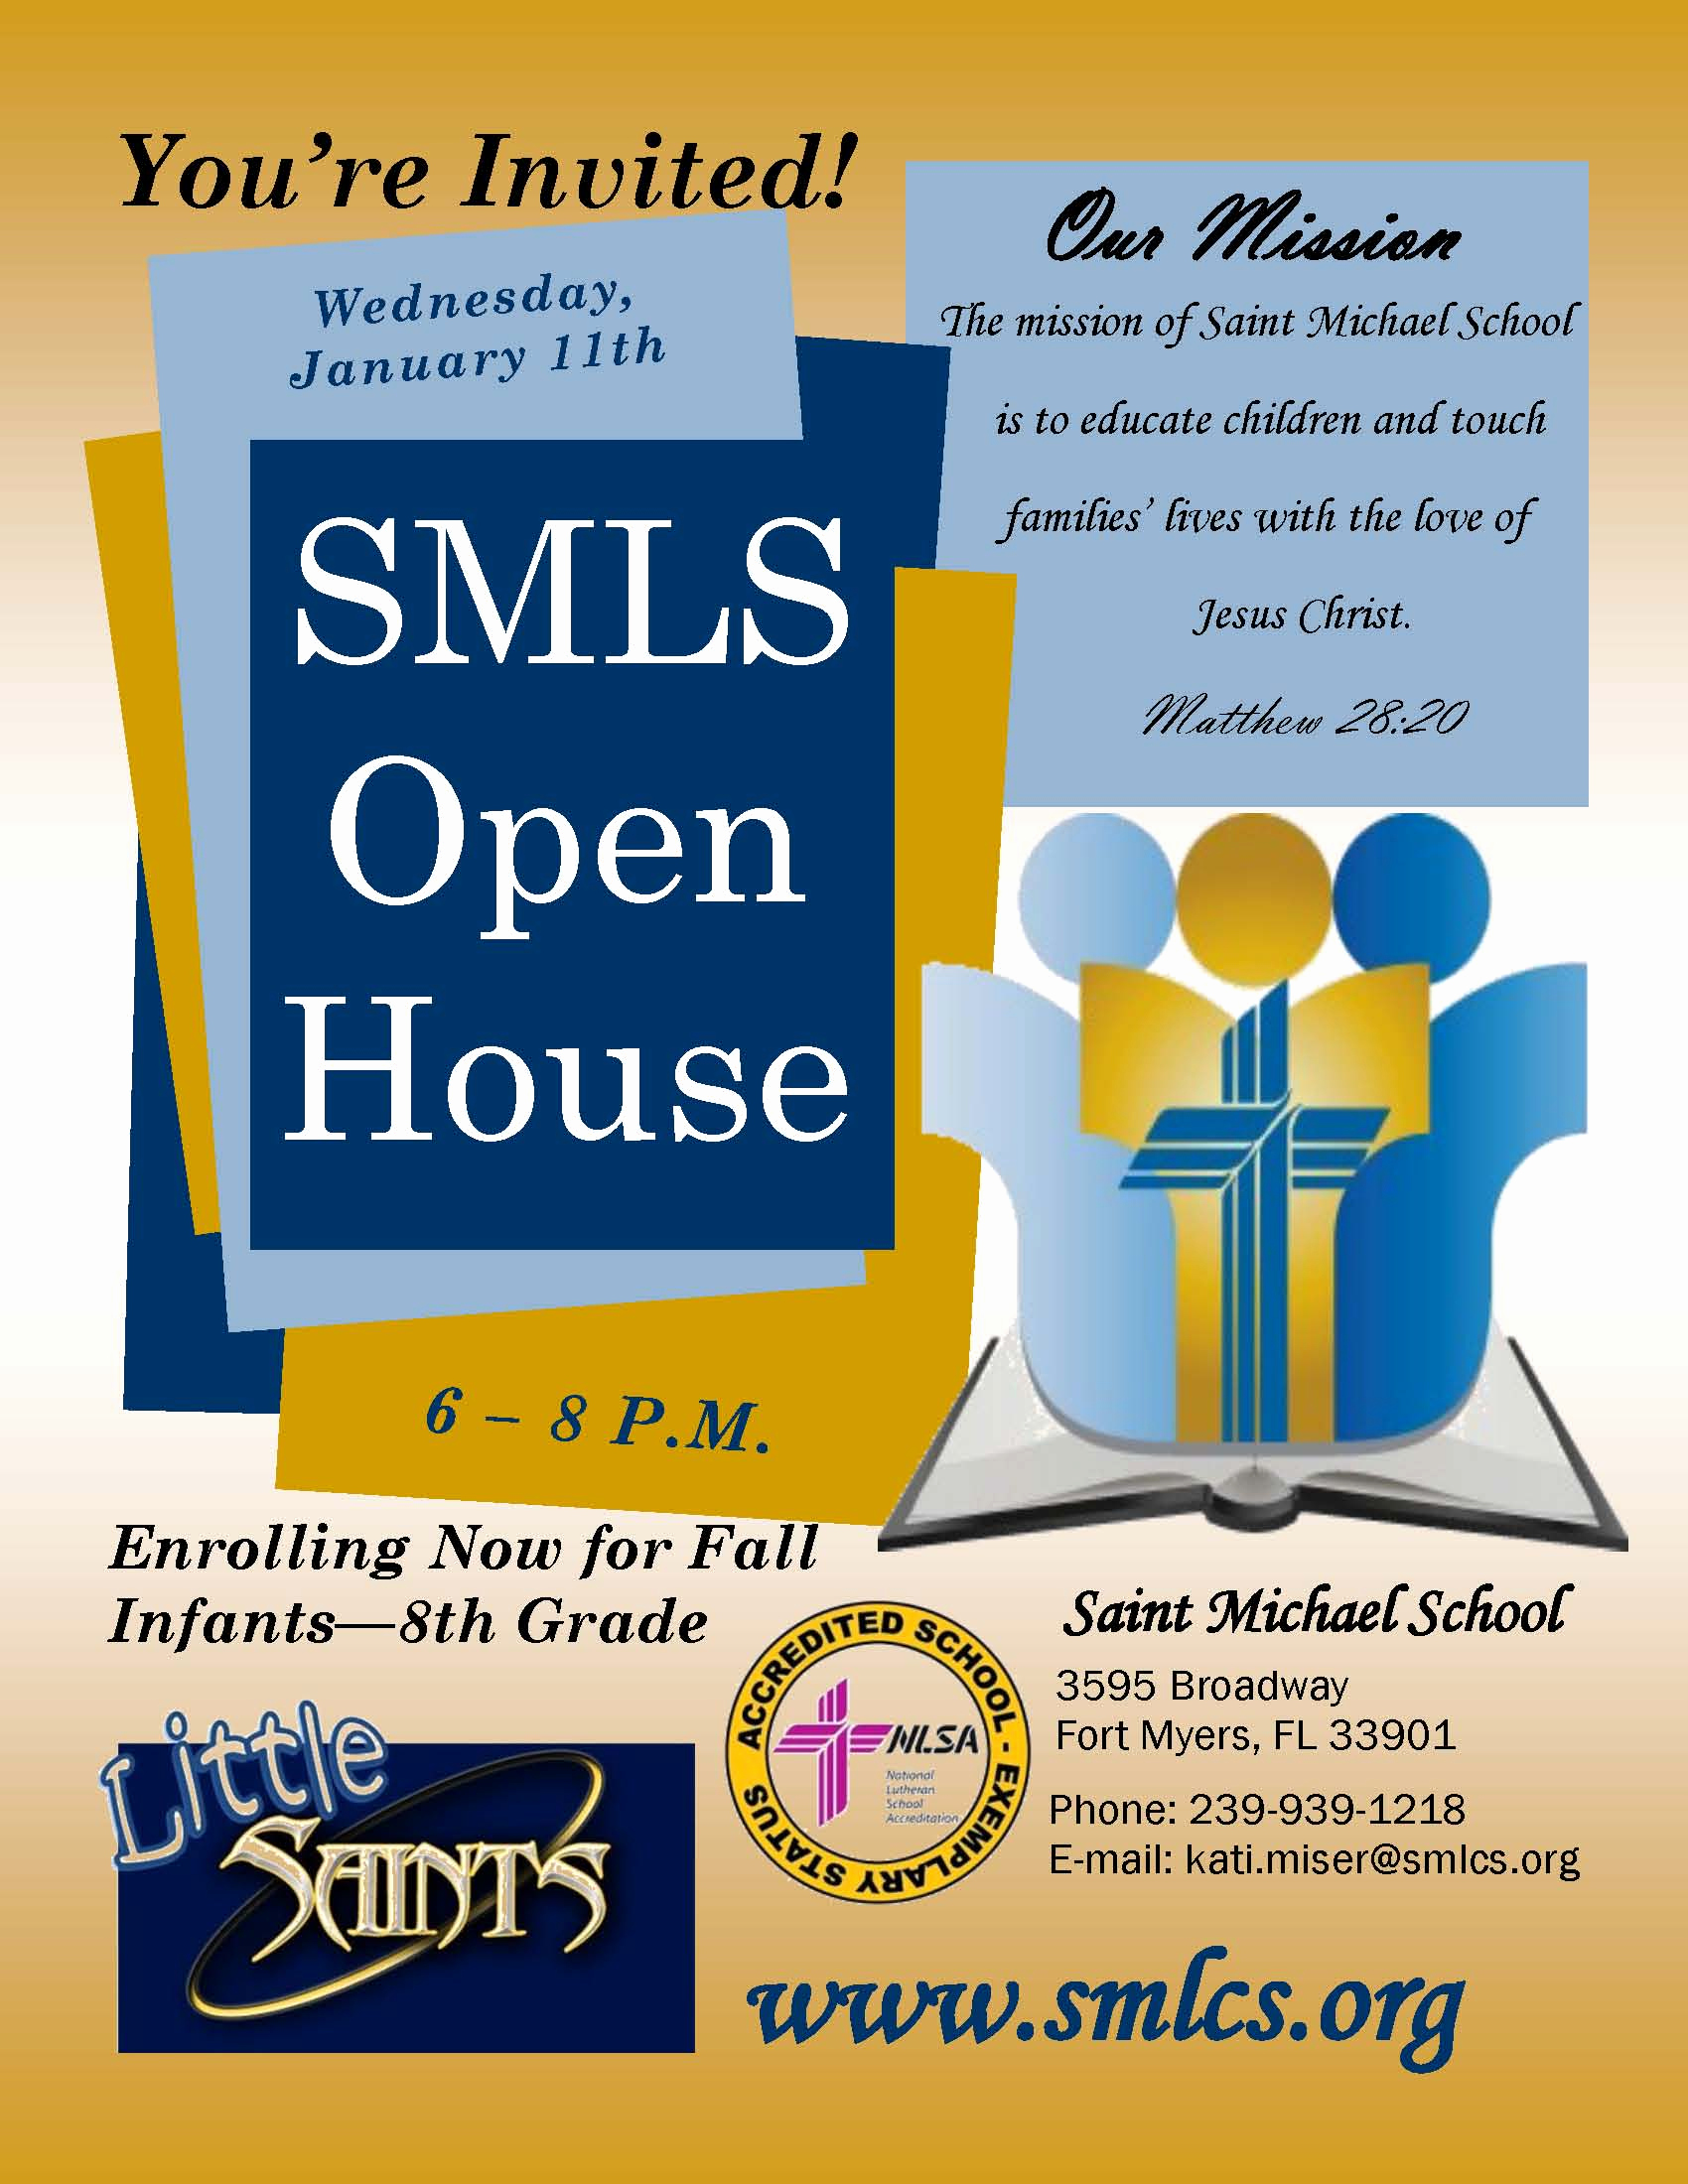 School Open House Invitation Elegant Open House Invitation – Saint Michael Lutheran School